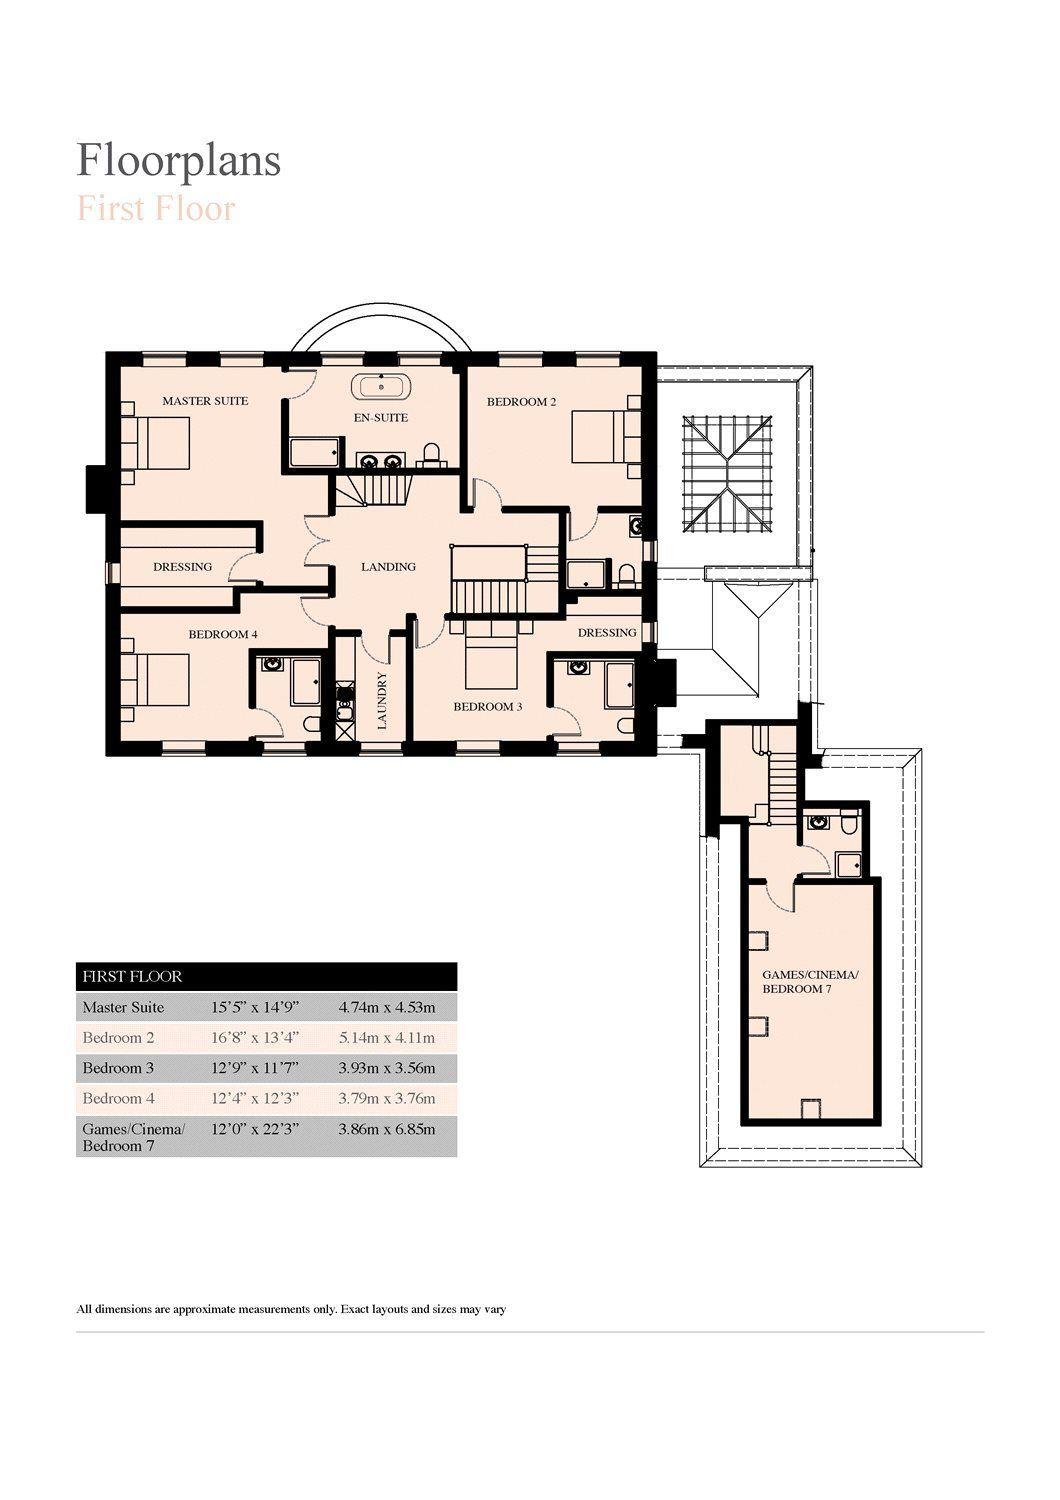 Floor plan 2 Icehouse Wood, Oxted, Surrey RH8 9DW | Georgian ... on ice appliances, iceshanty plans, ice box plans, ice boat plans, ice houses in the 1800s, 8x10 ice shack plans, ice trailer plans, plant press plans, ice signs, ice office, stable plans, ice dogs, ice wedding, ice building, rustic ice chest plans, indoor riding arena building plans, ice houses on farms, ice landscaping, ice furniture, ice luge stand plans,